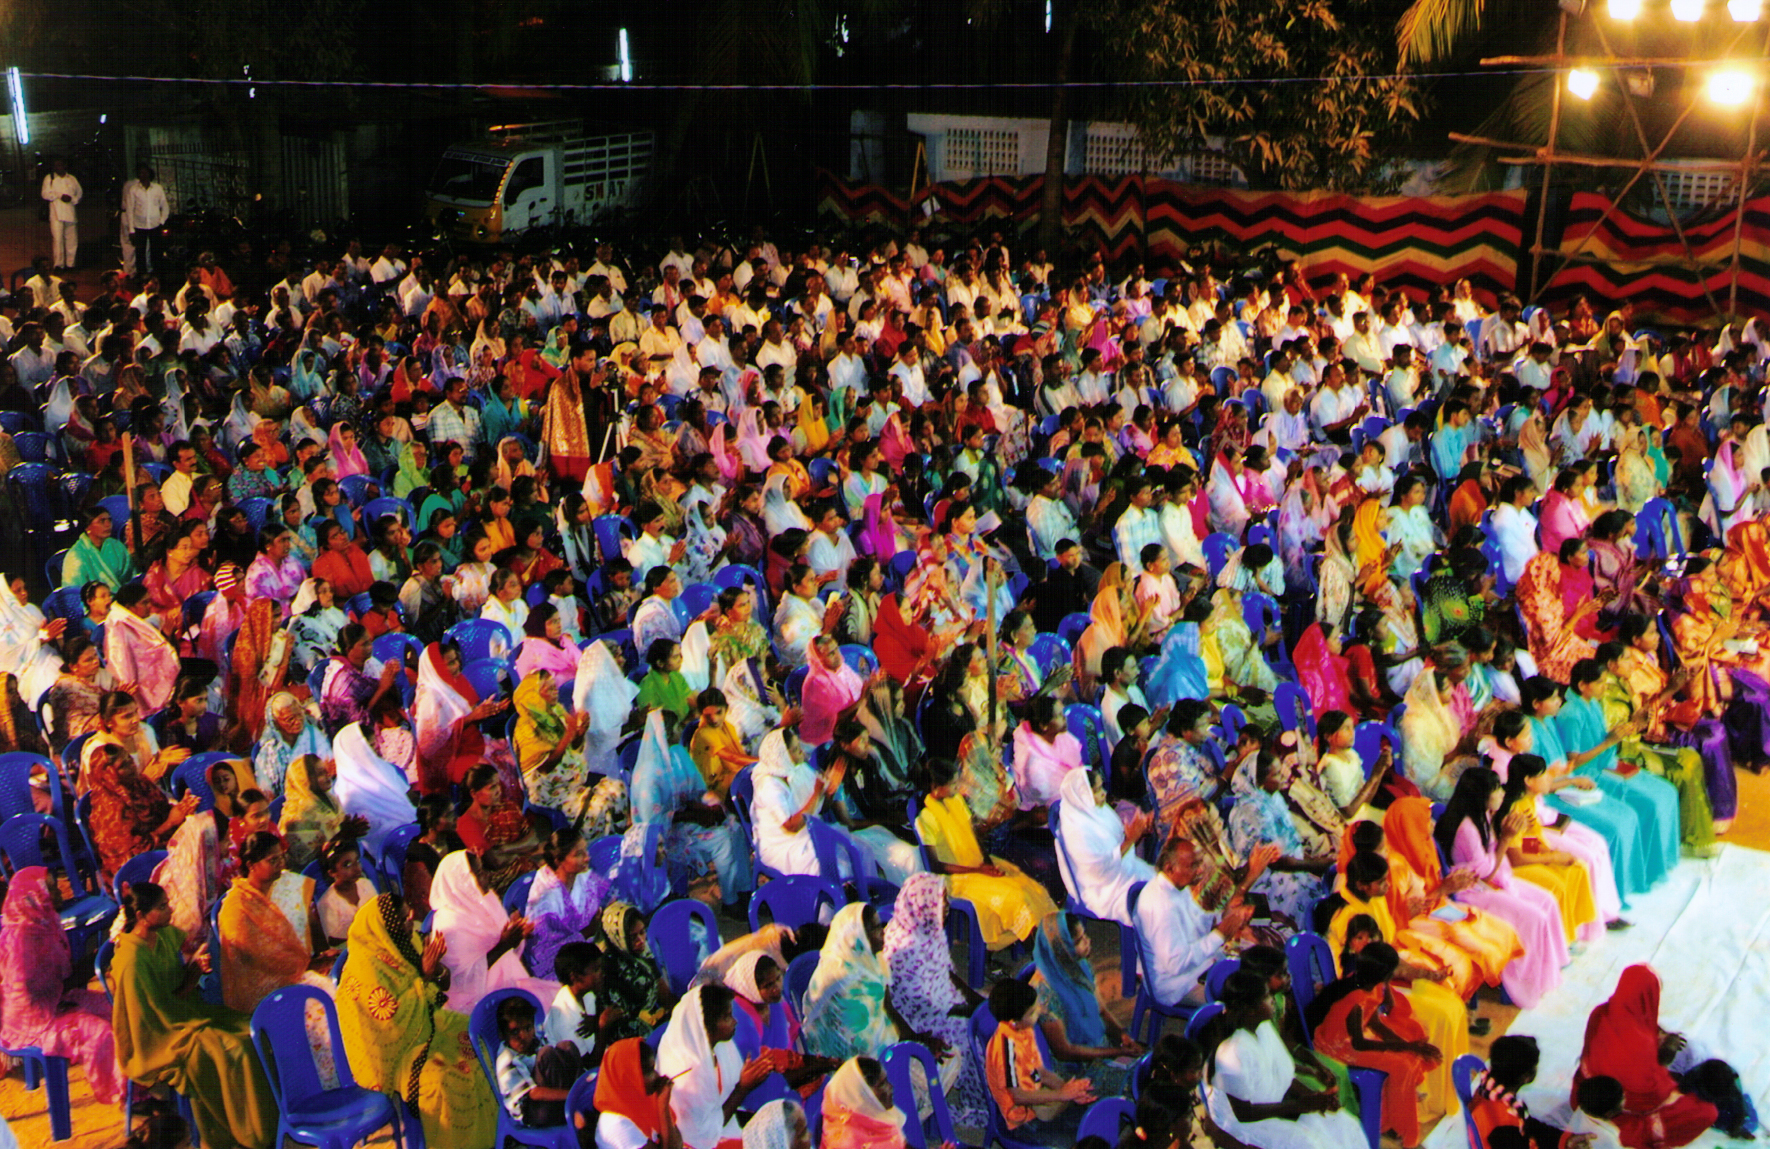 The Crowd That Gathered at The Crusade Ground During the Mission to India 2008